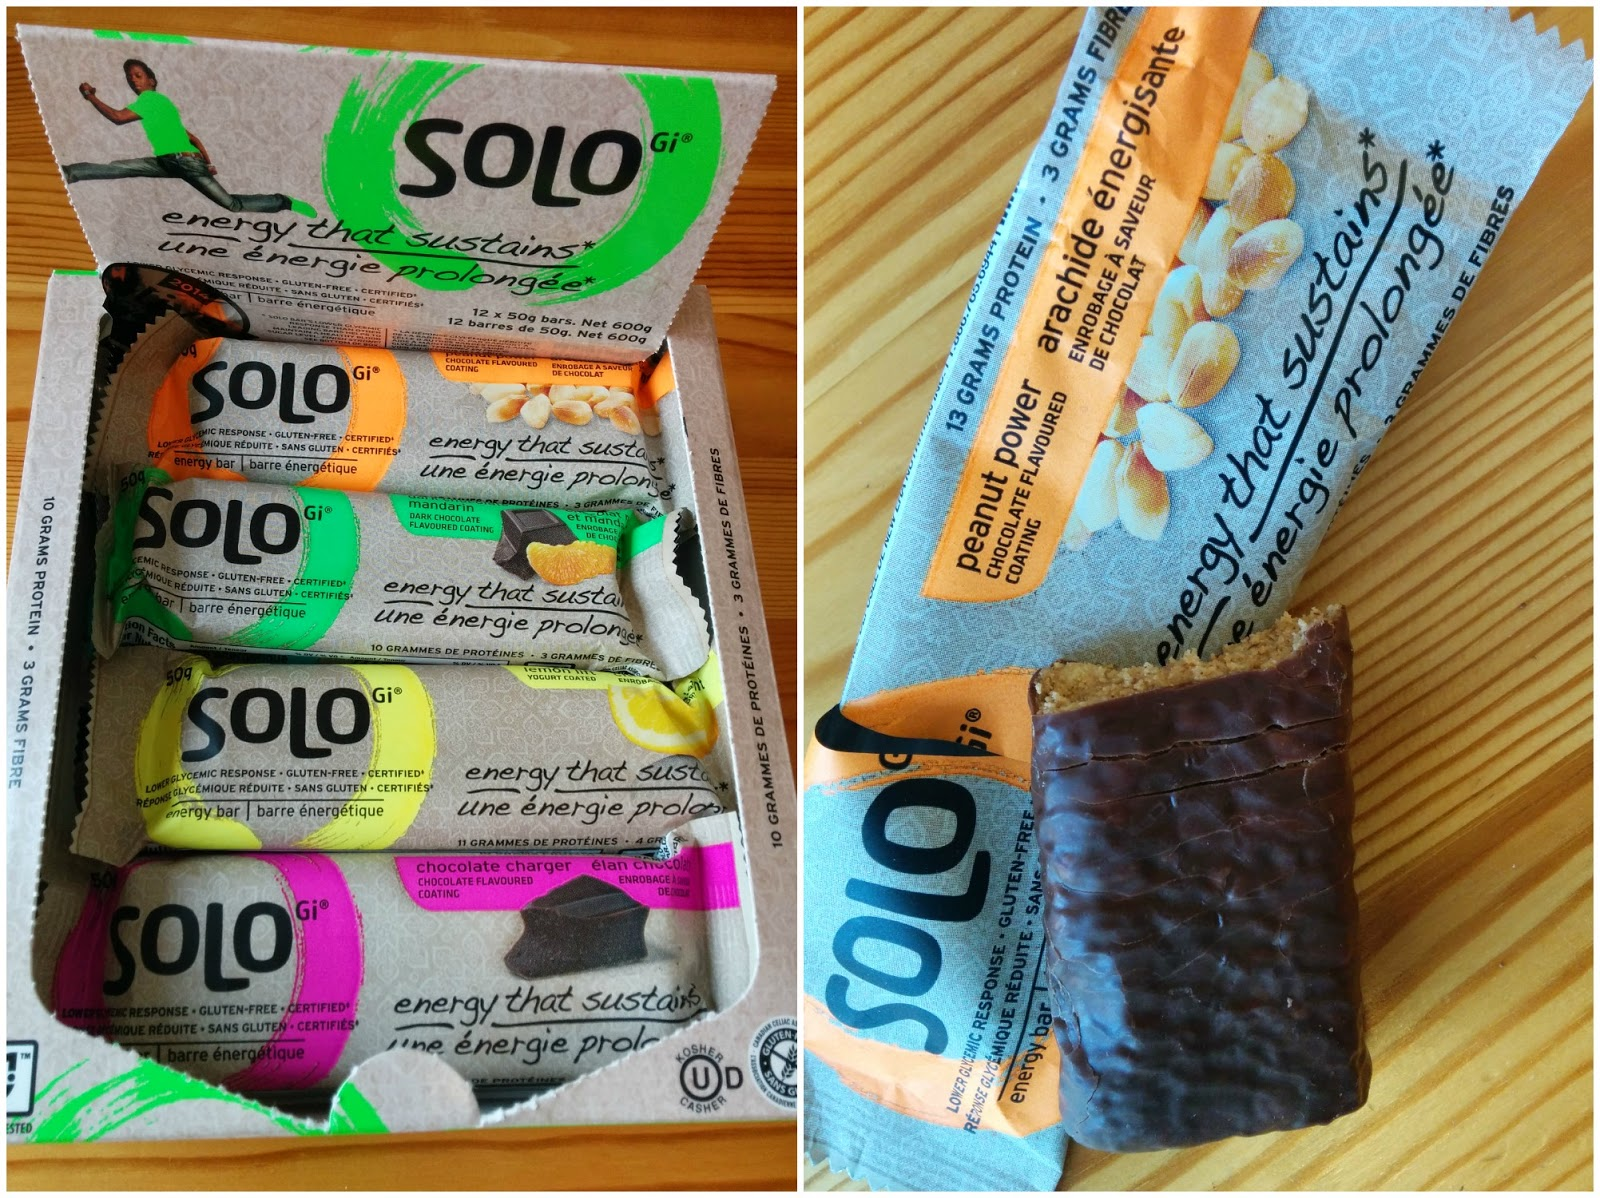 SoLo energy and nutrition bars